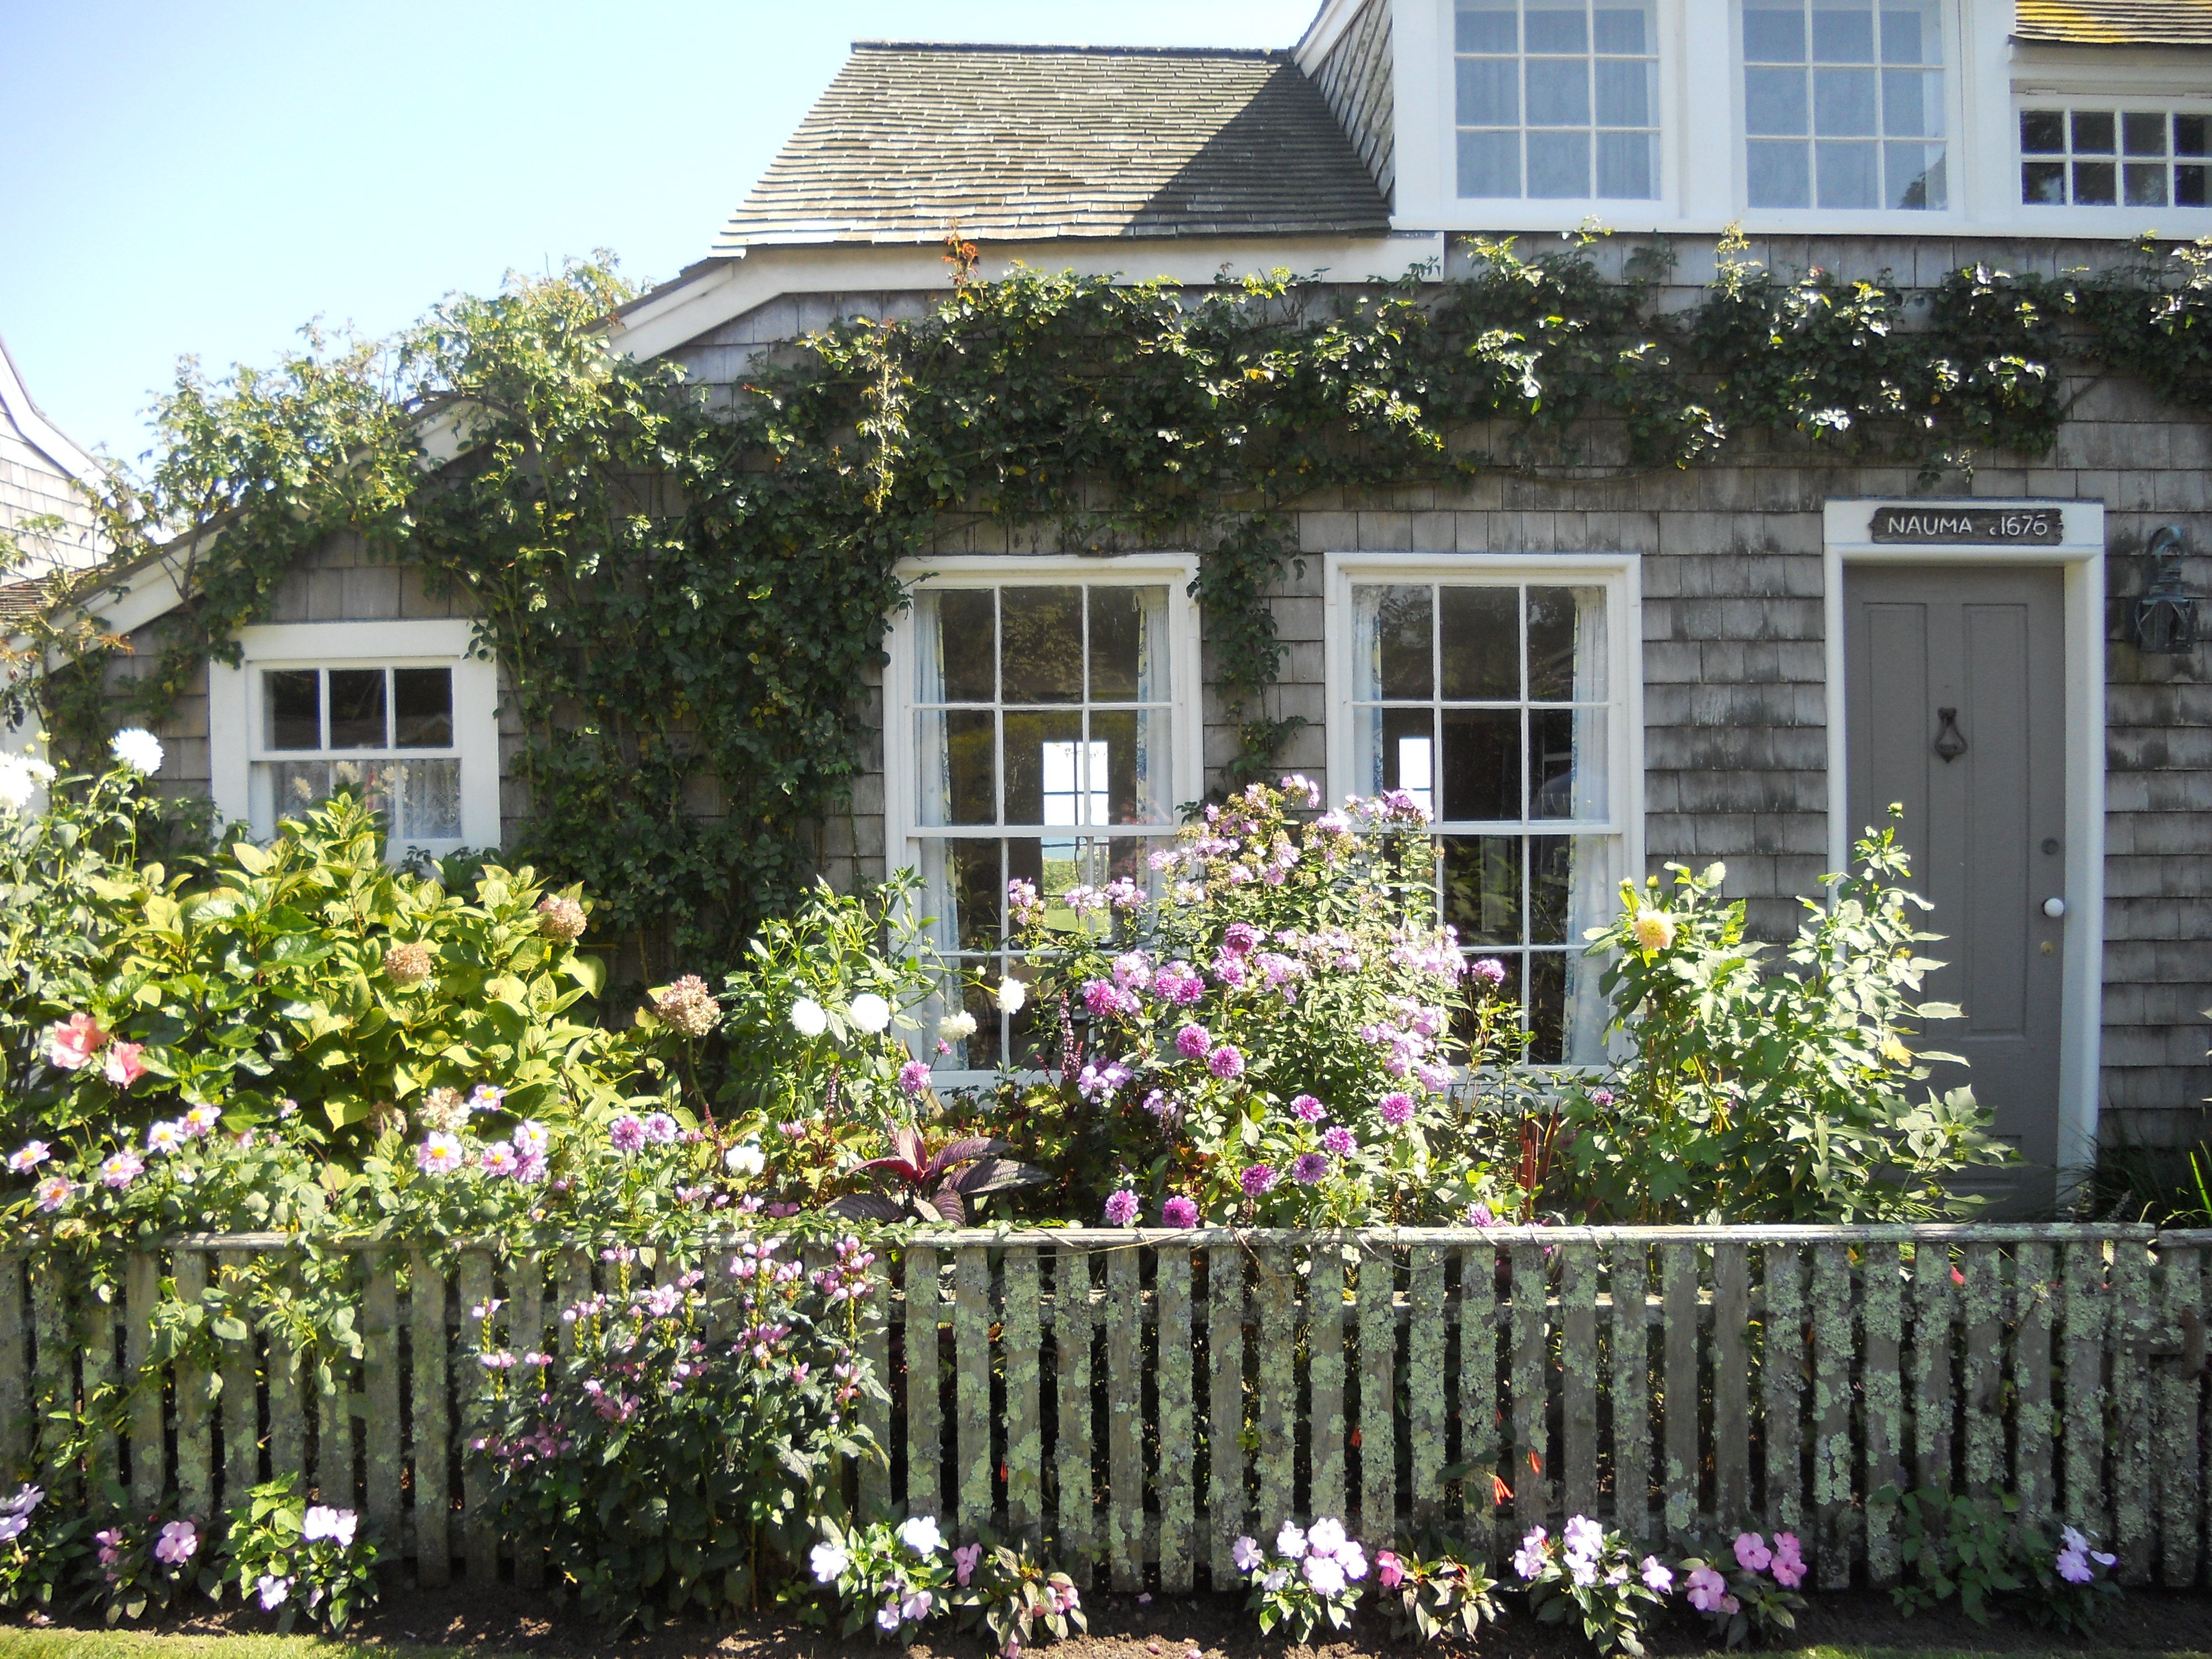 heritage nantucket island cottage sea houses pinterest pin cottages of architectural roses the captain and covered img captains rose